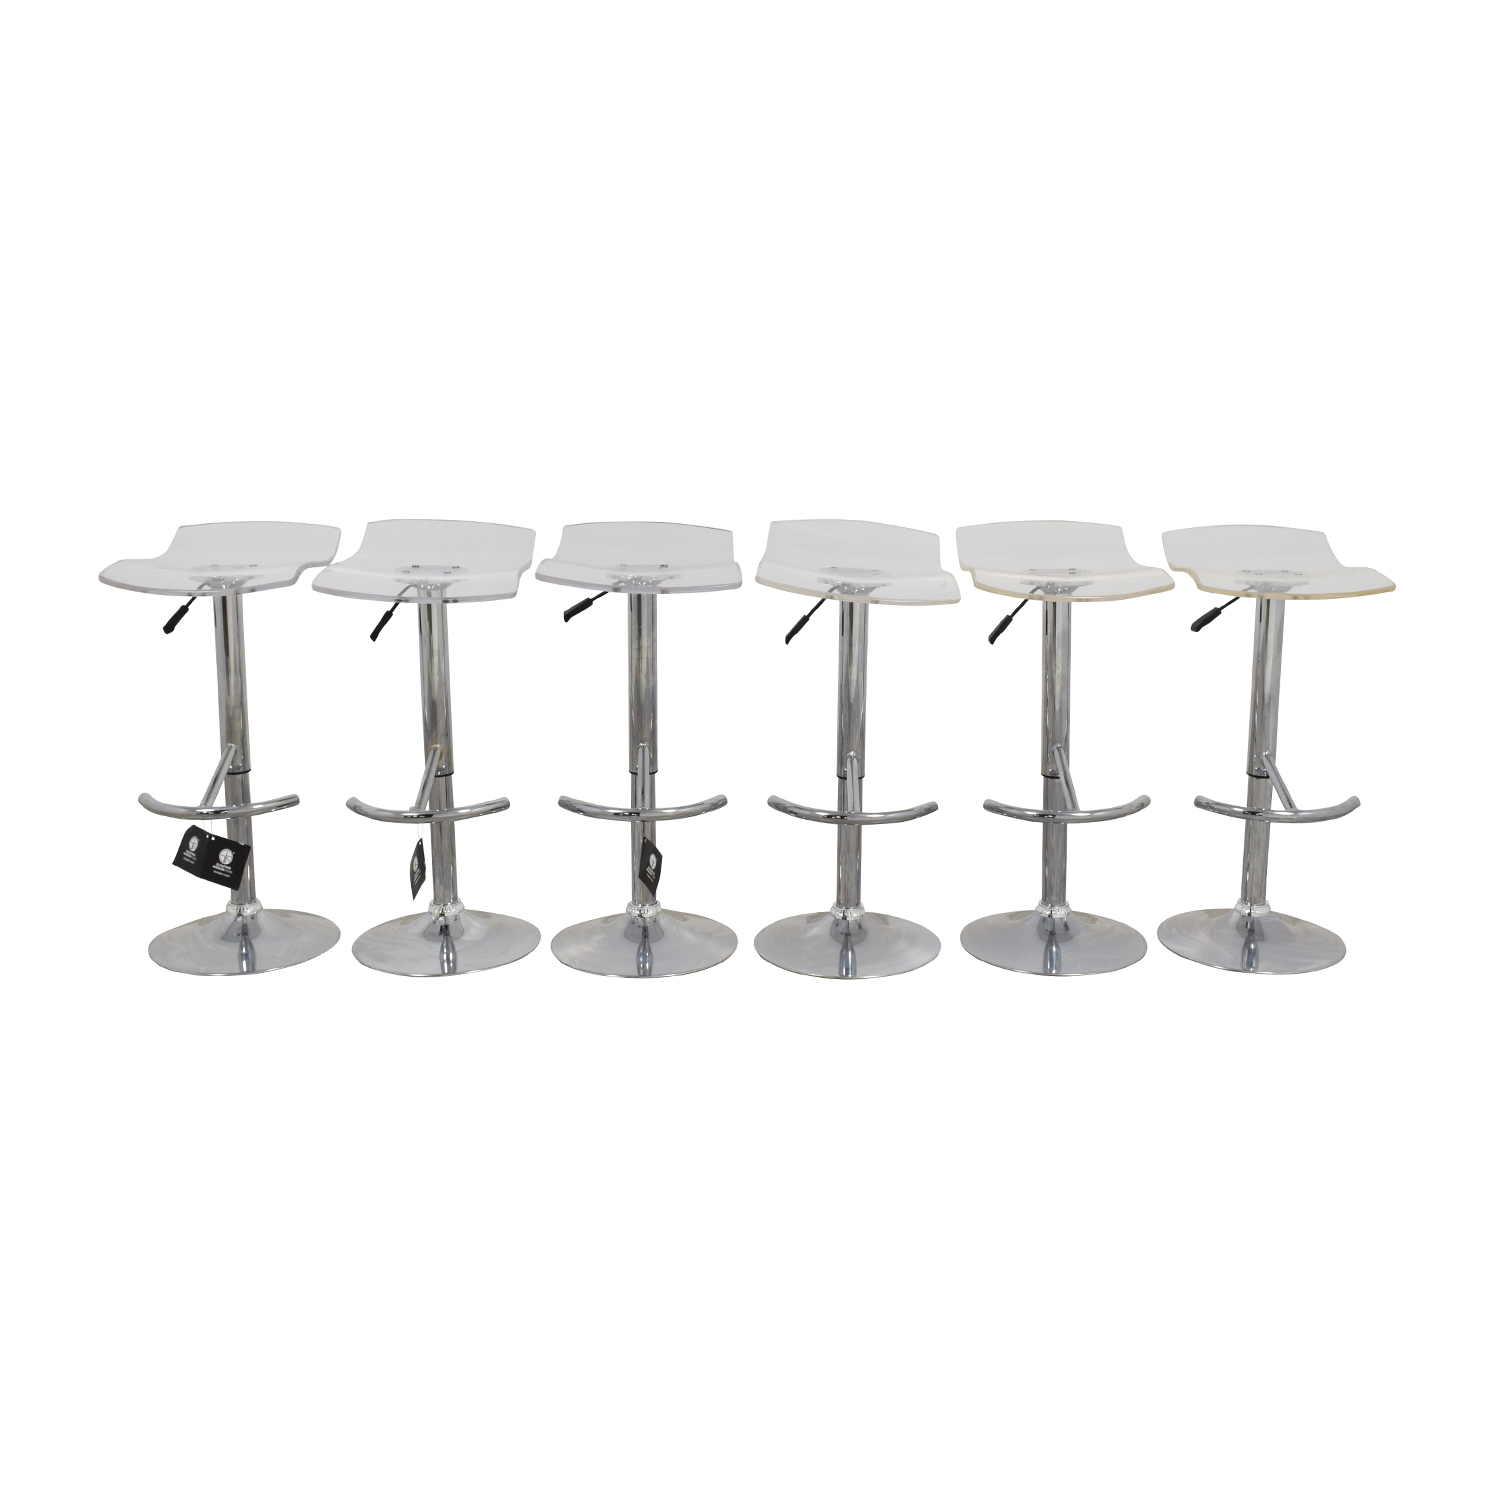 InMod InMod California Ghost Adjustable Stools Stools